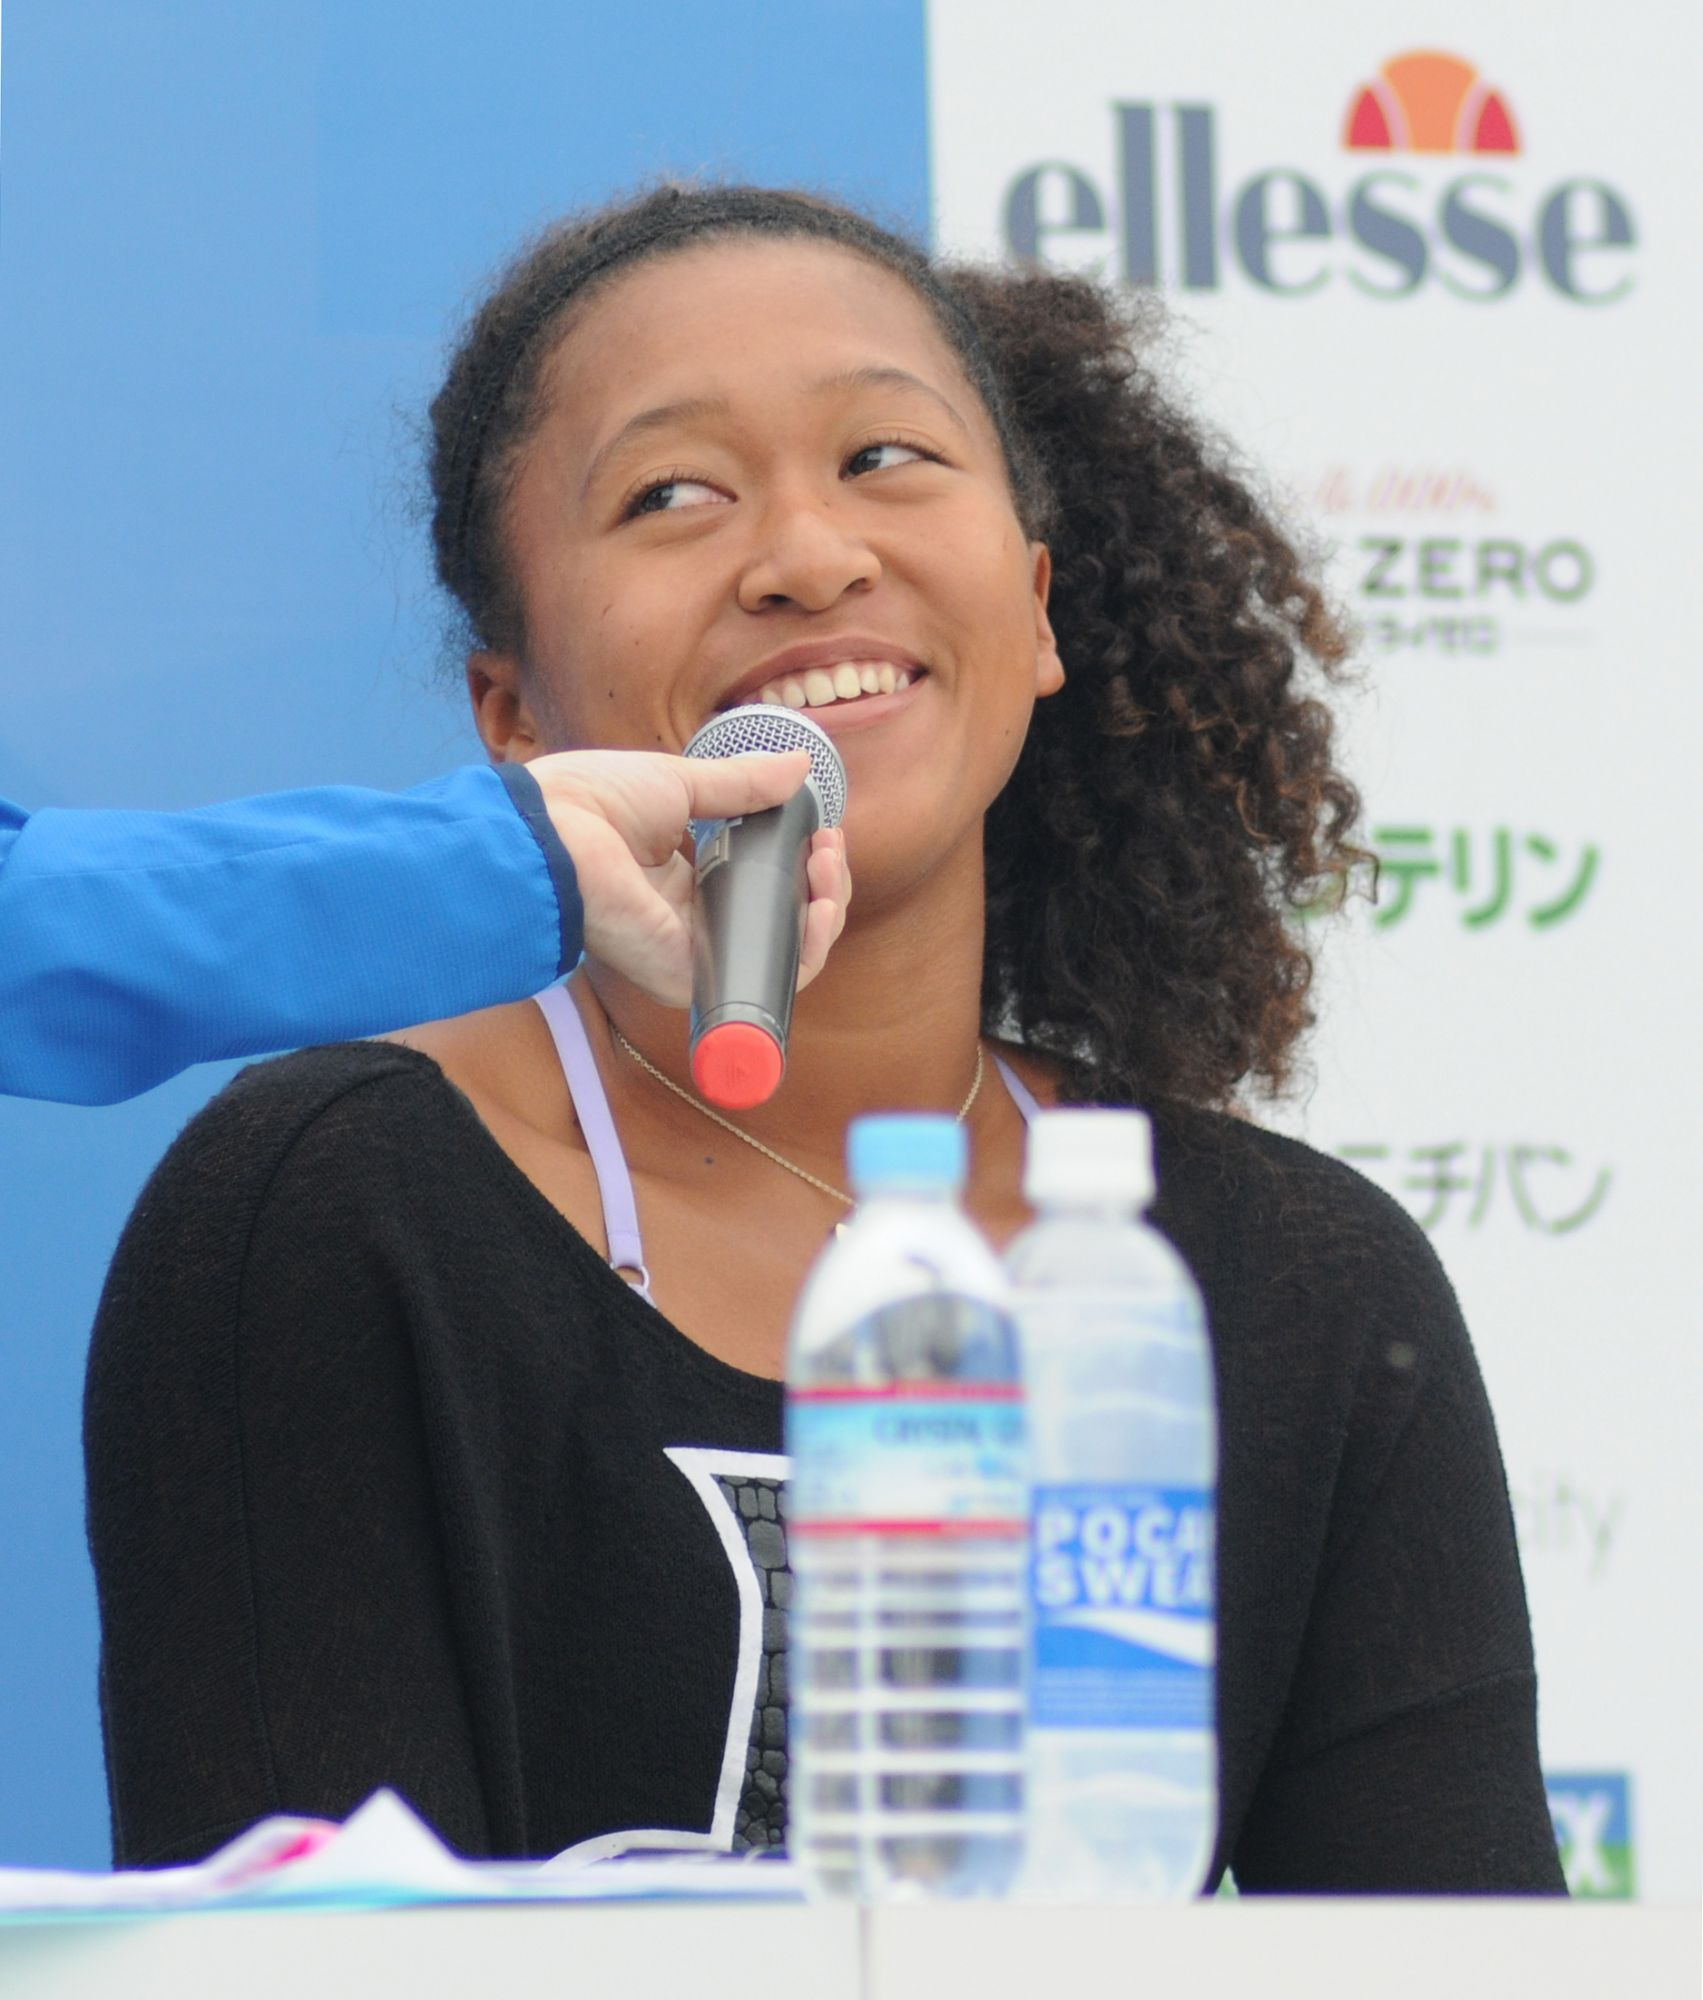 5 Things You Need To Know About Naomi Osaka